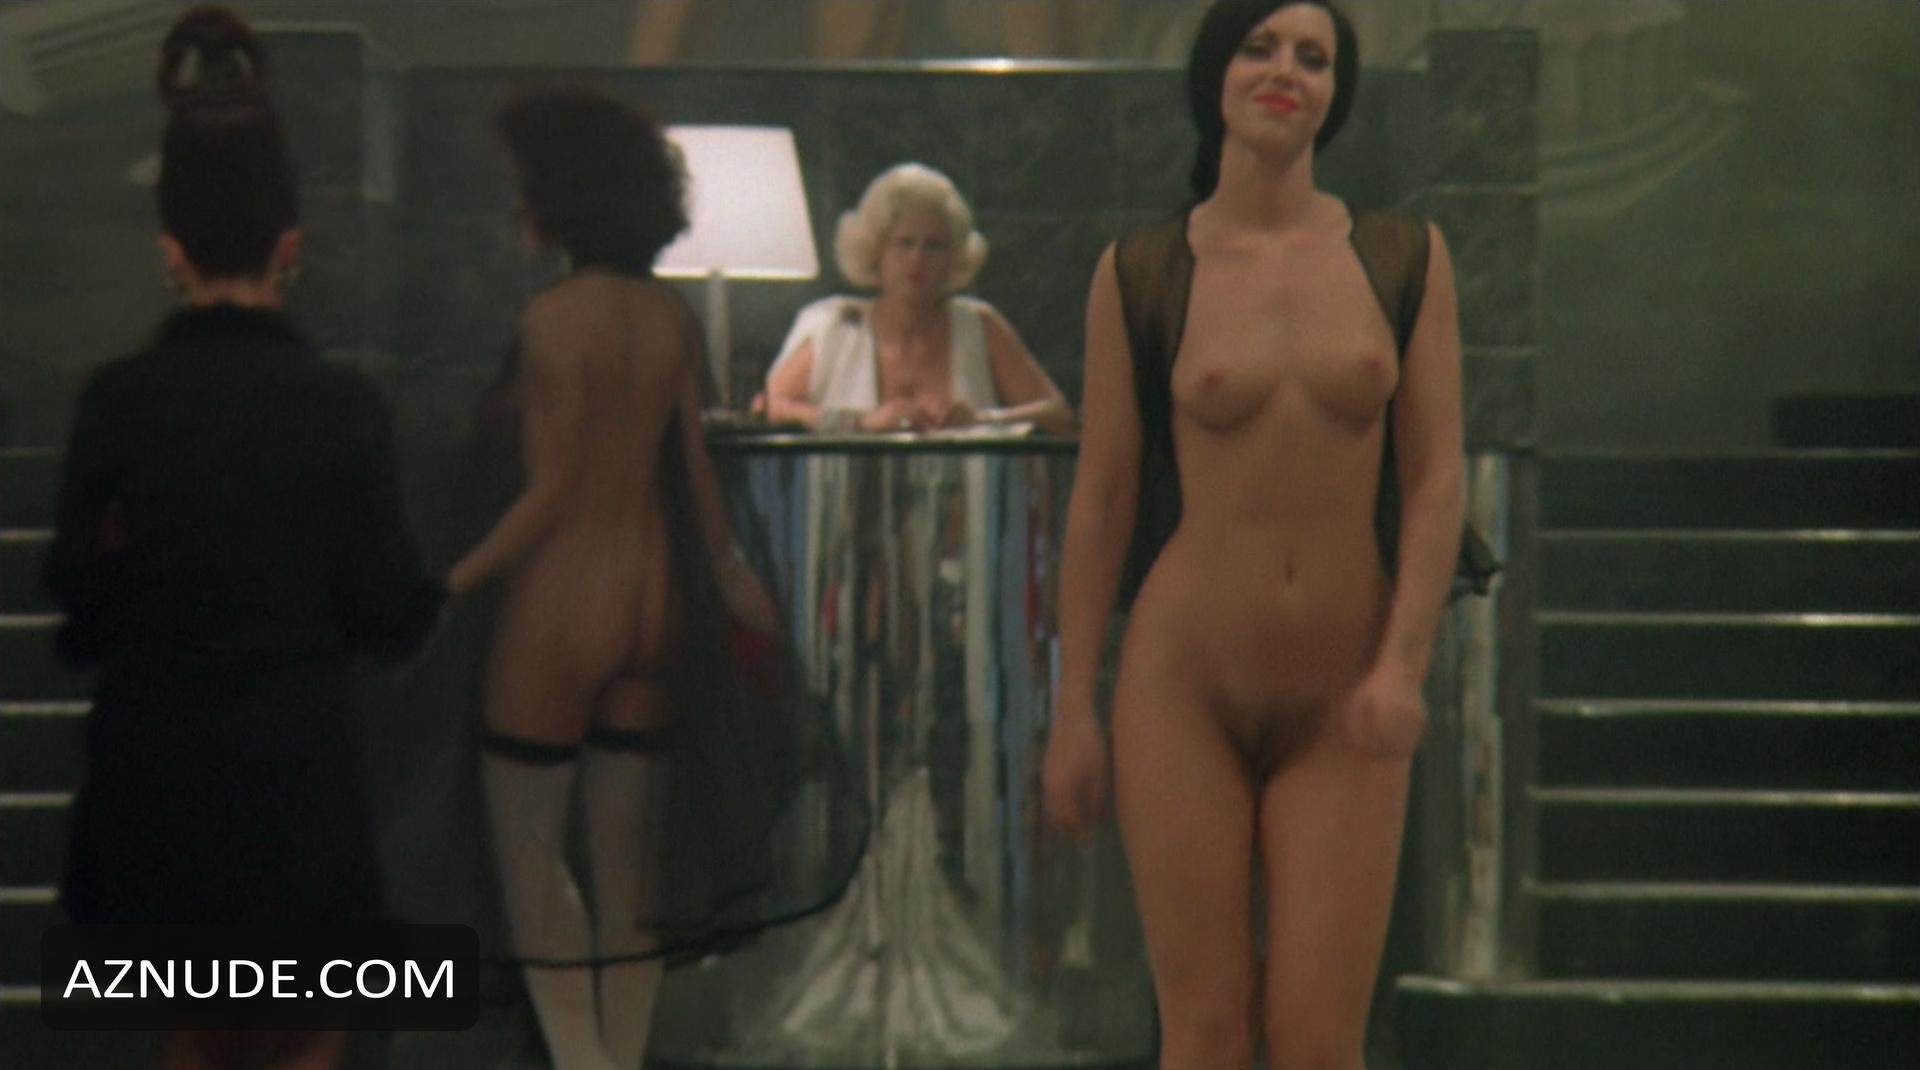 A nude scene from games of thrones 5